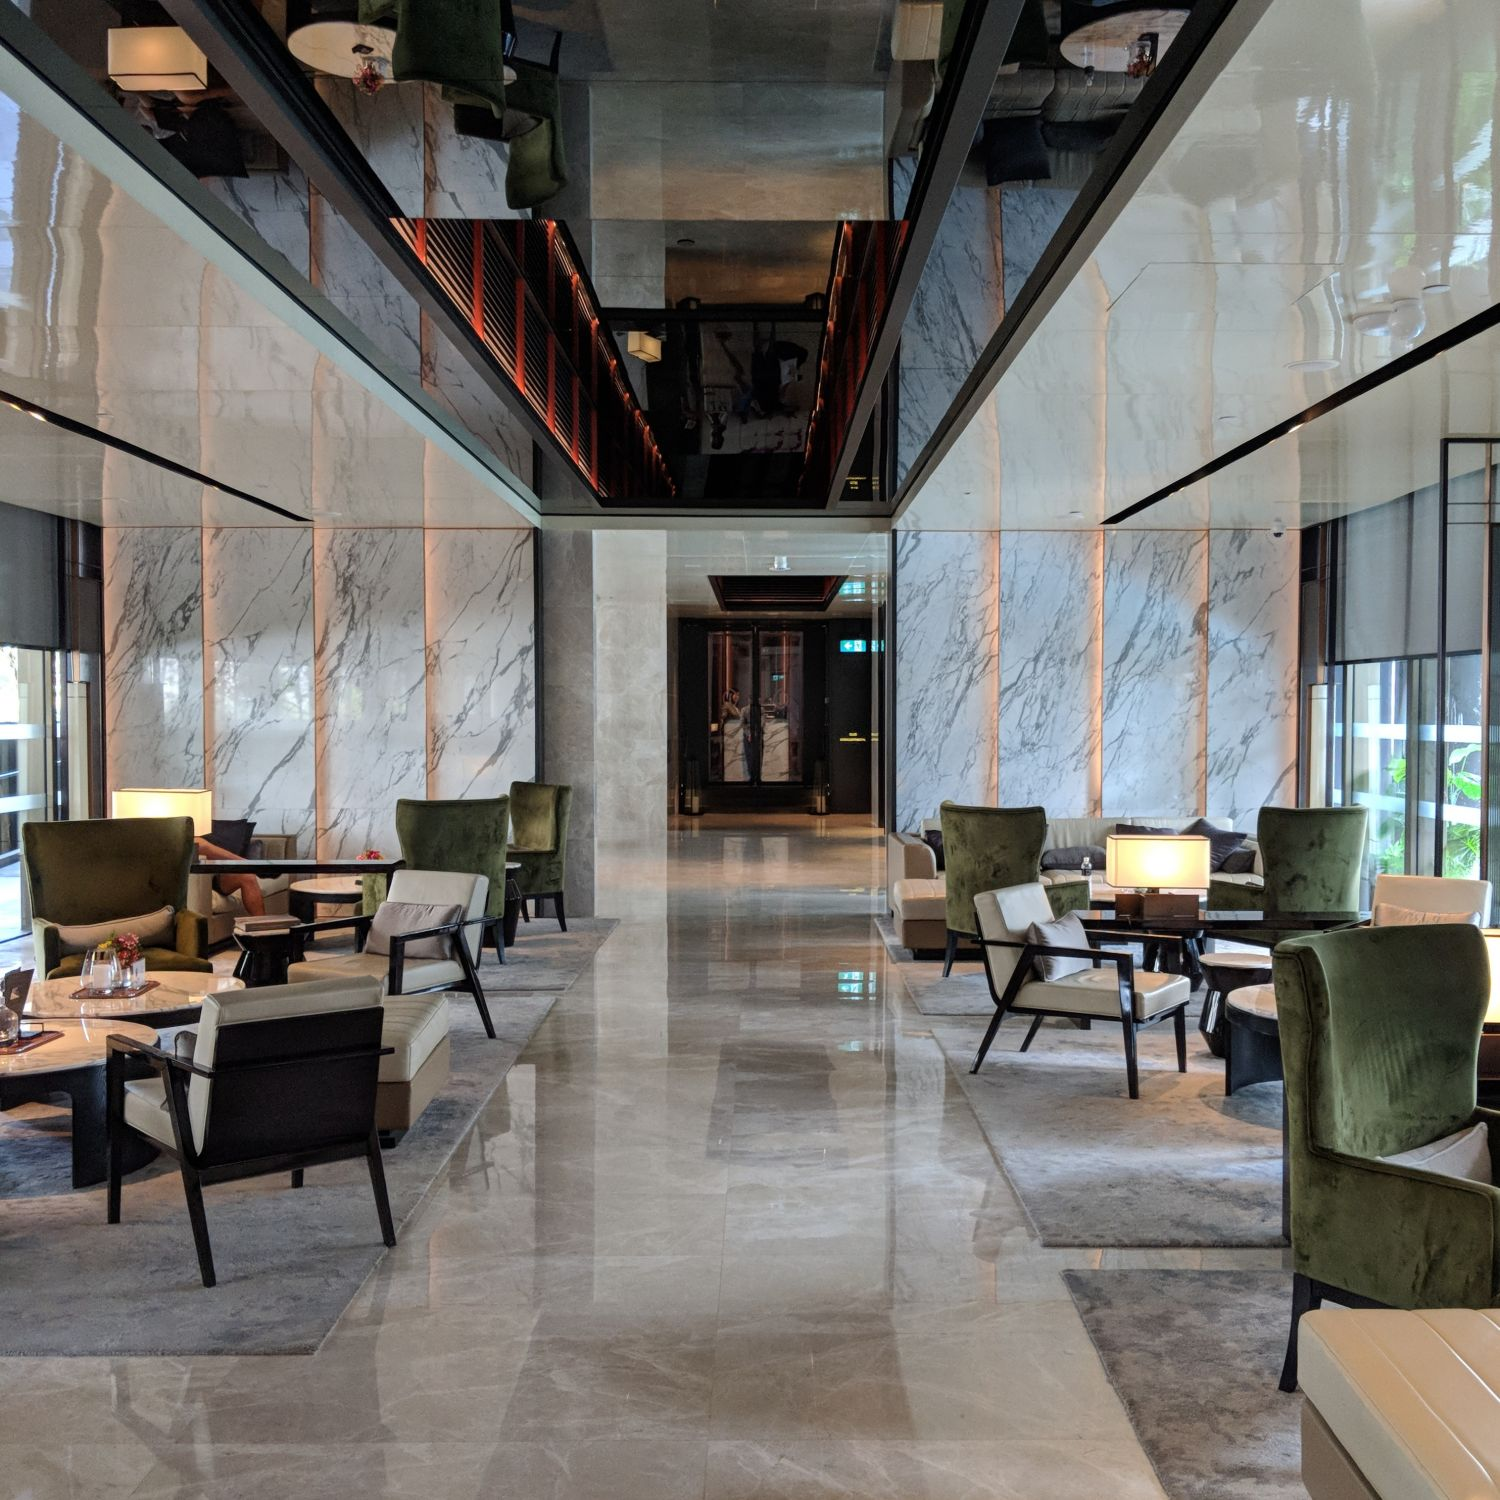 InterContinental Singapore Robertson Quay quayside lounge